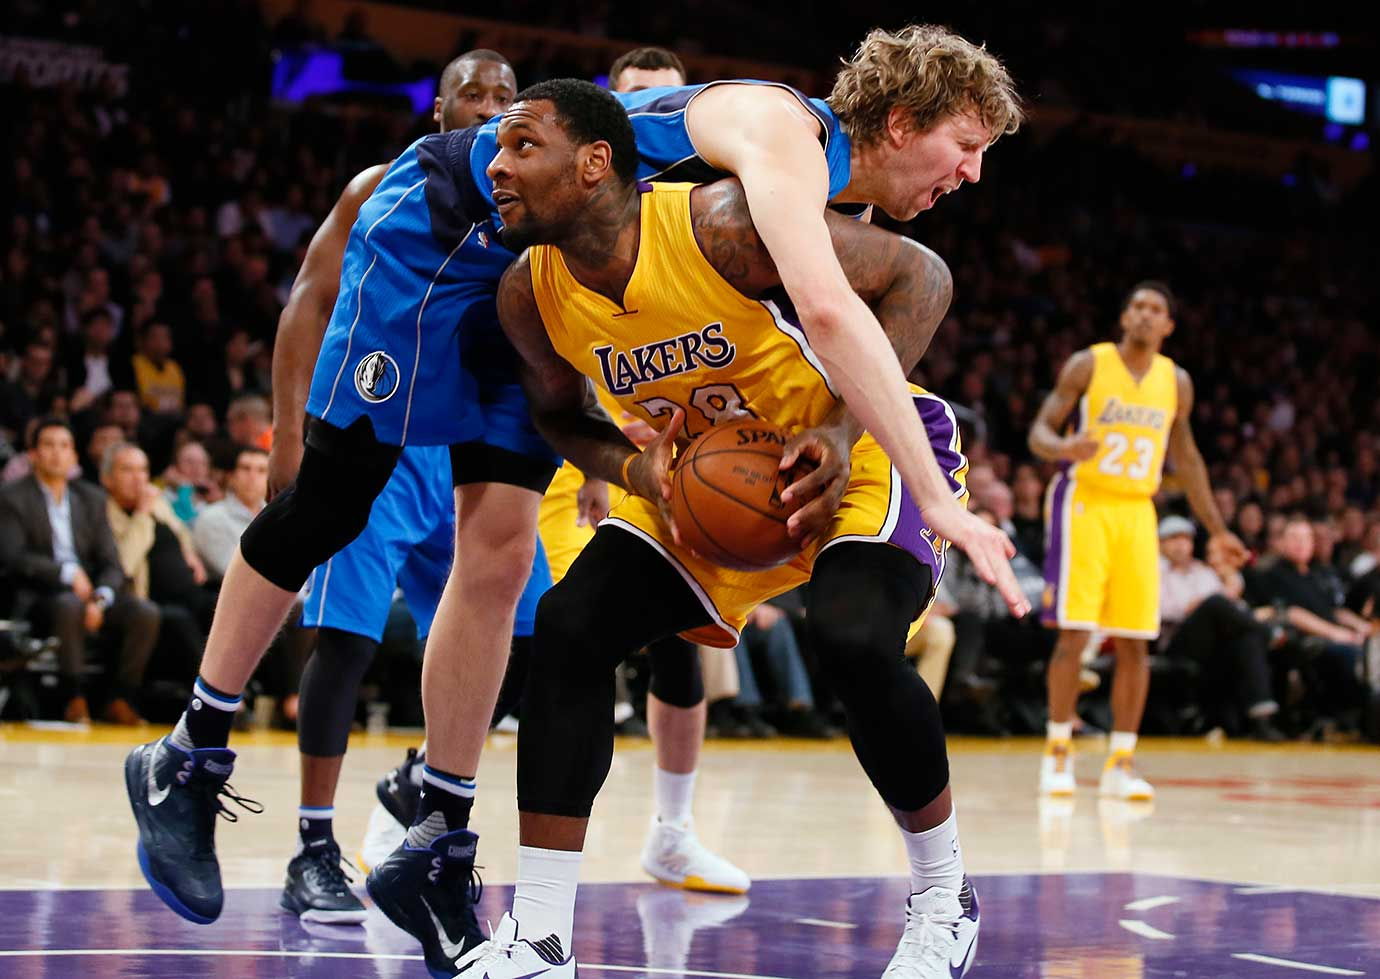 Dirk Nowitzki of Dallas fouls Tarik Black of the Lakers during a game in Los Angeles. The Mavericks won 92-90.